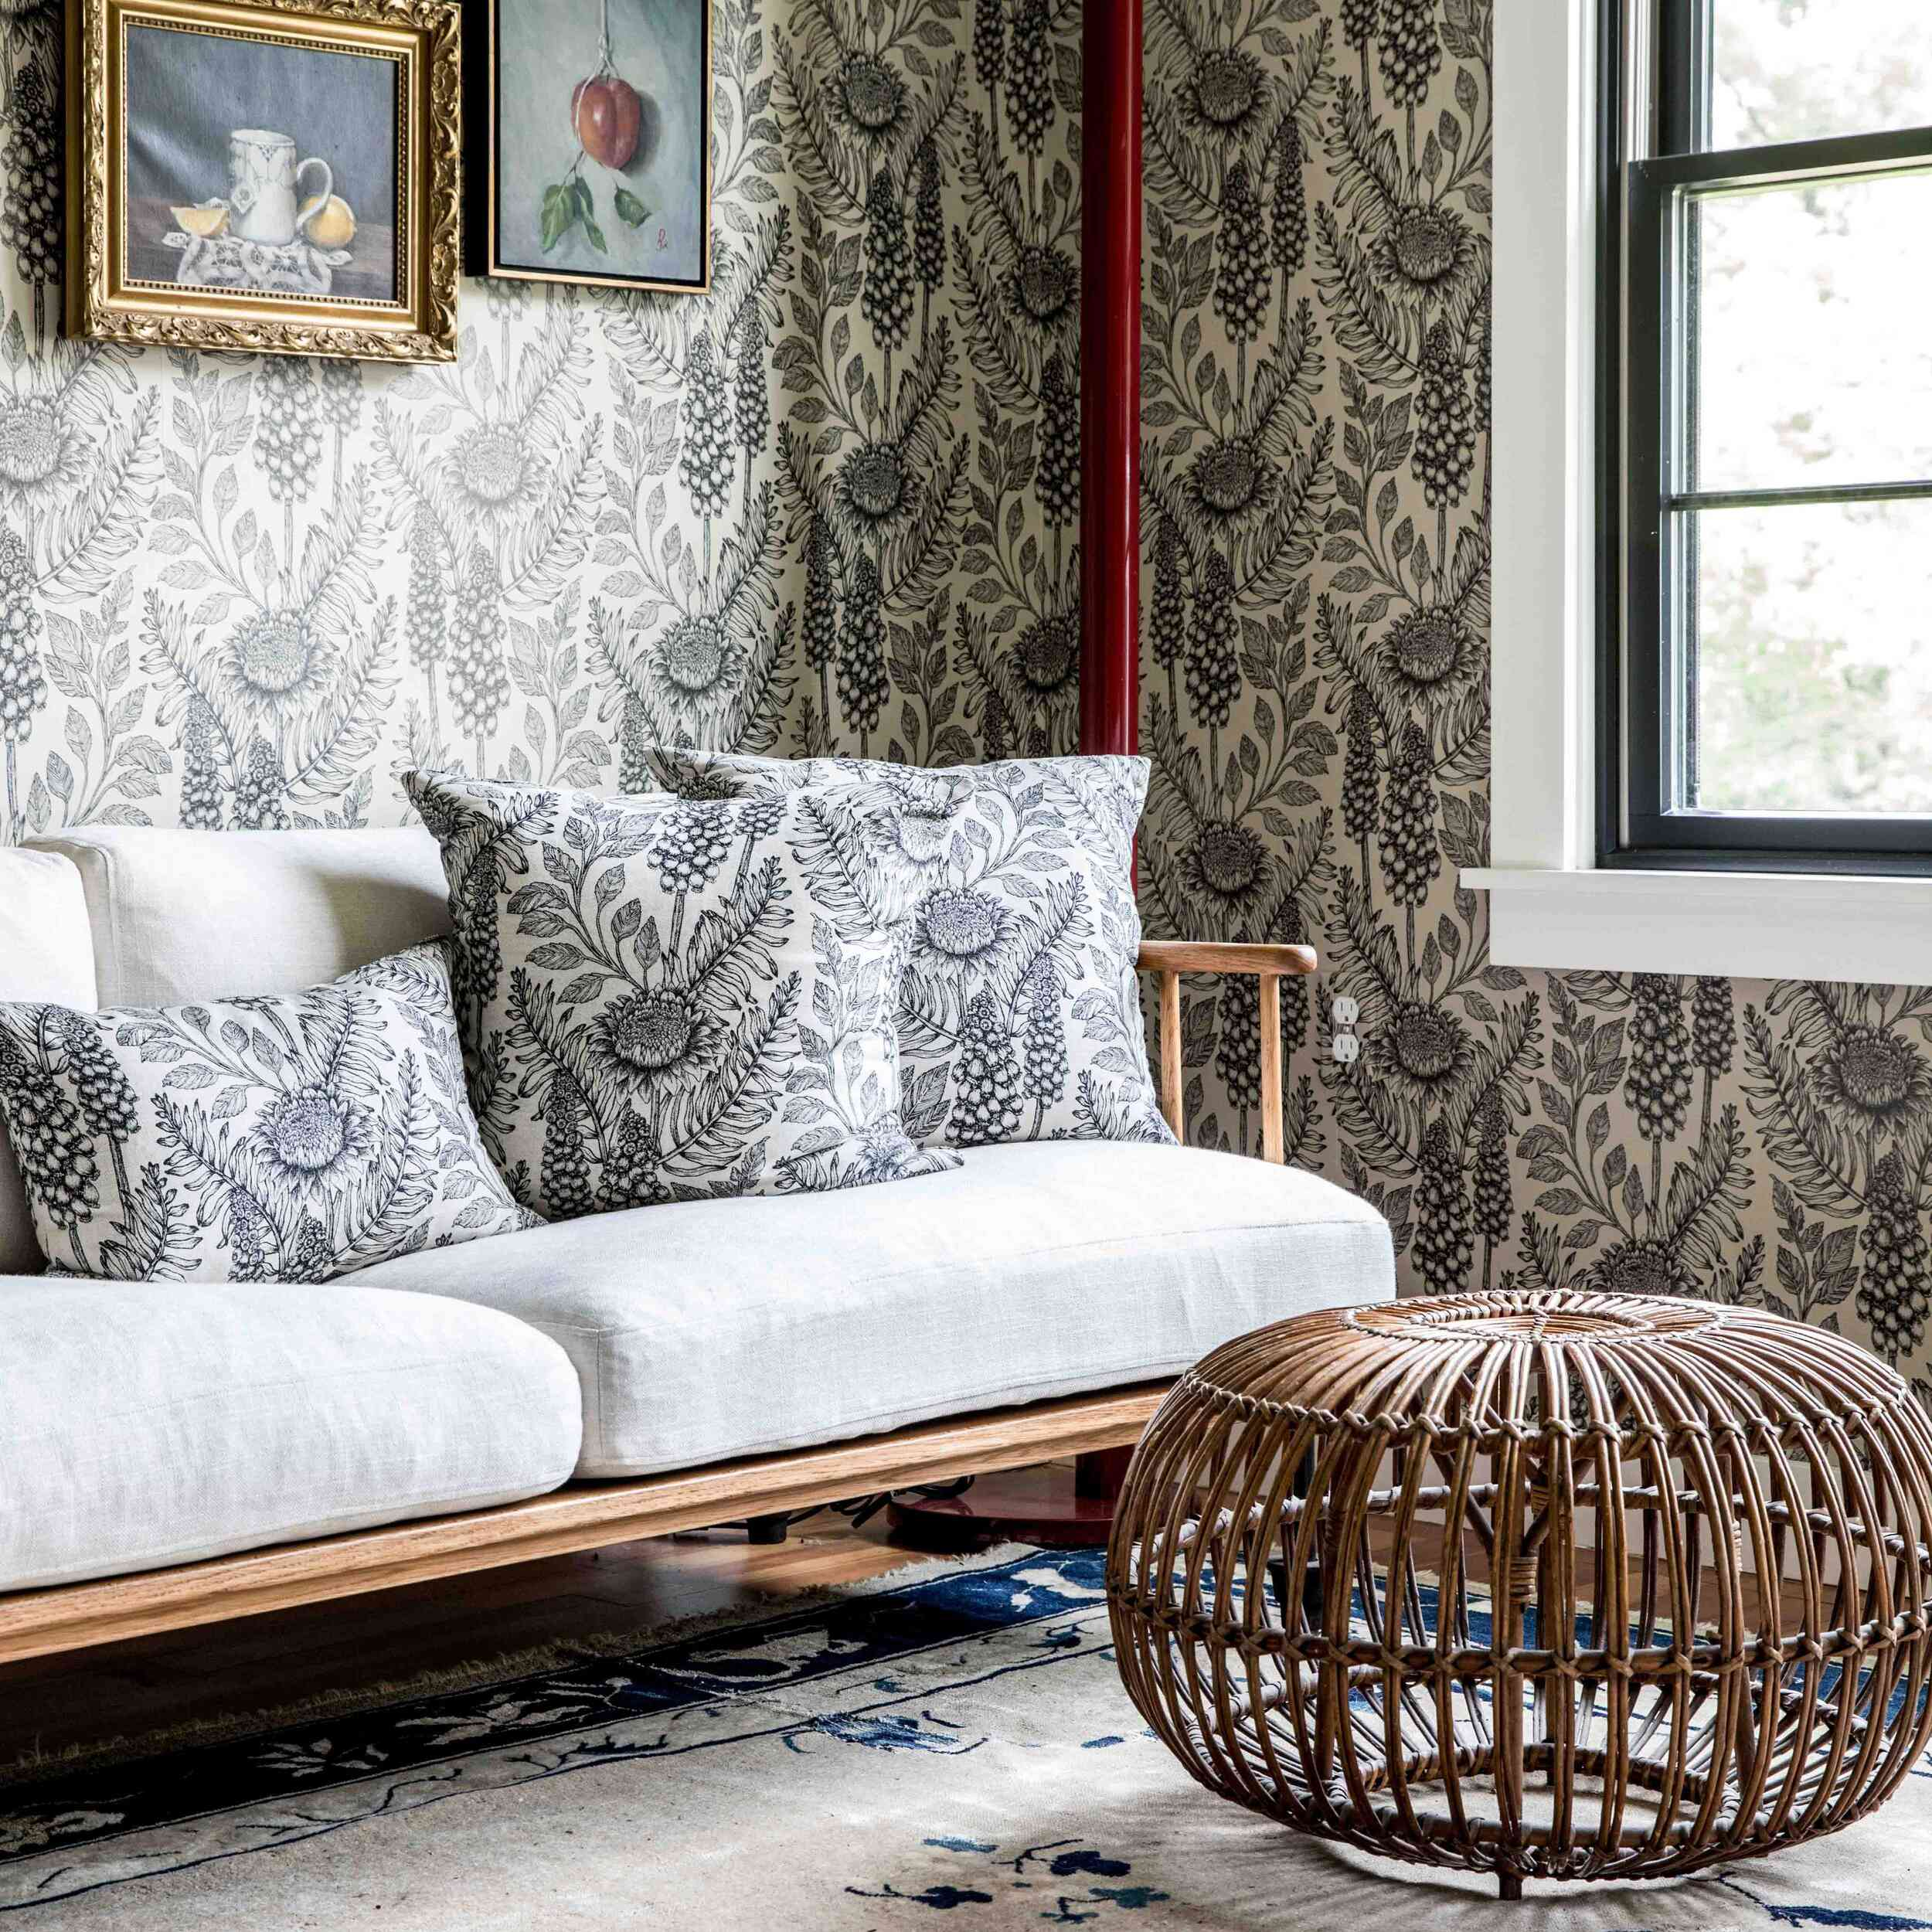 A living room with bold printed wallpaper and matching printed pillows